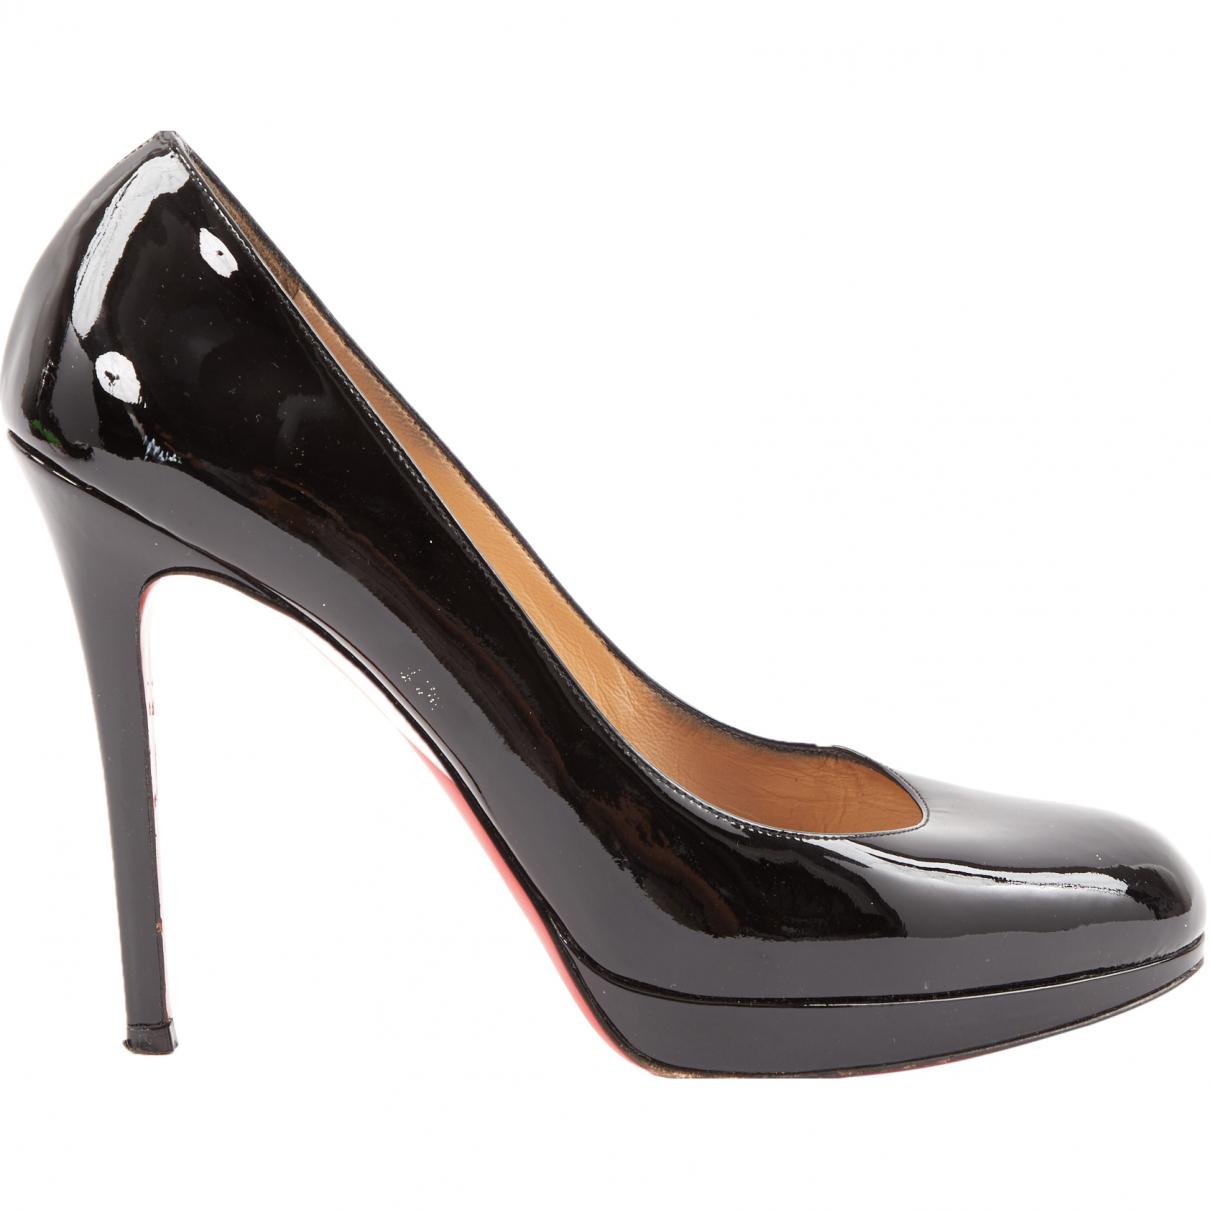 689d6180d919 Gallery. Previously sold at  Vestiaire Collective · Women s Christian  Louboutin Pigalle ...